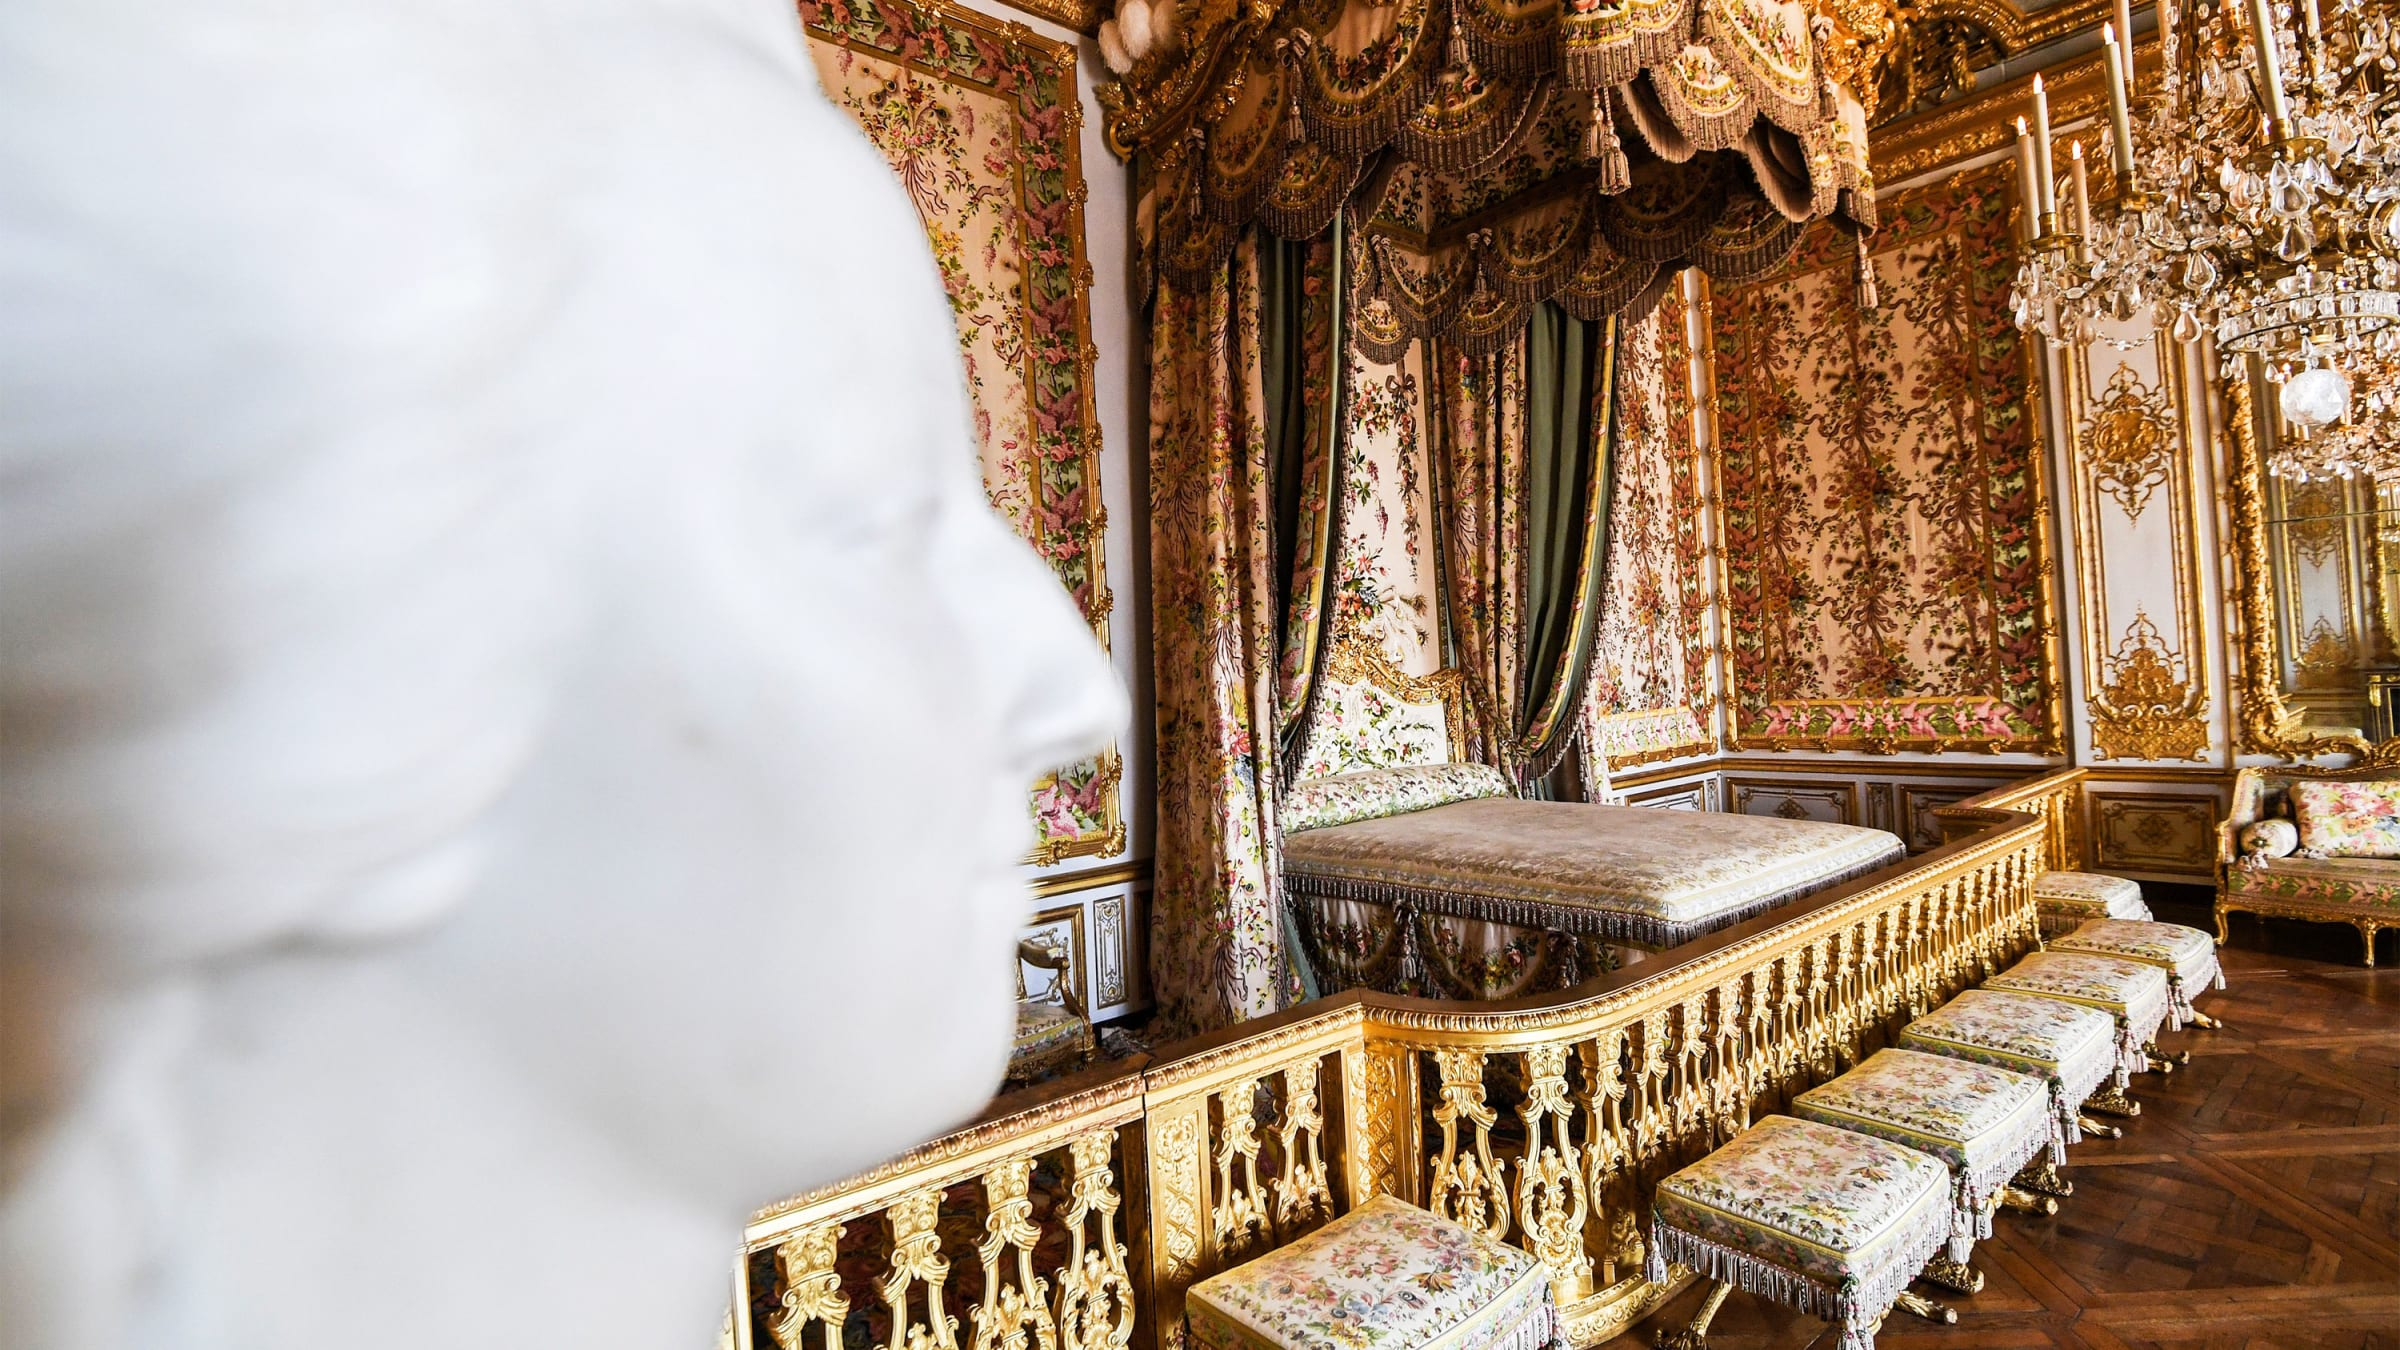 Sex orgies in french palaces